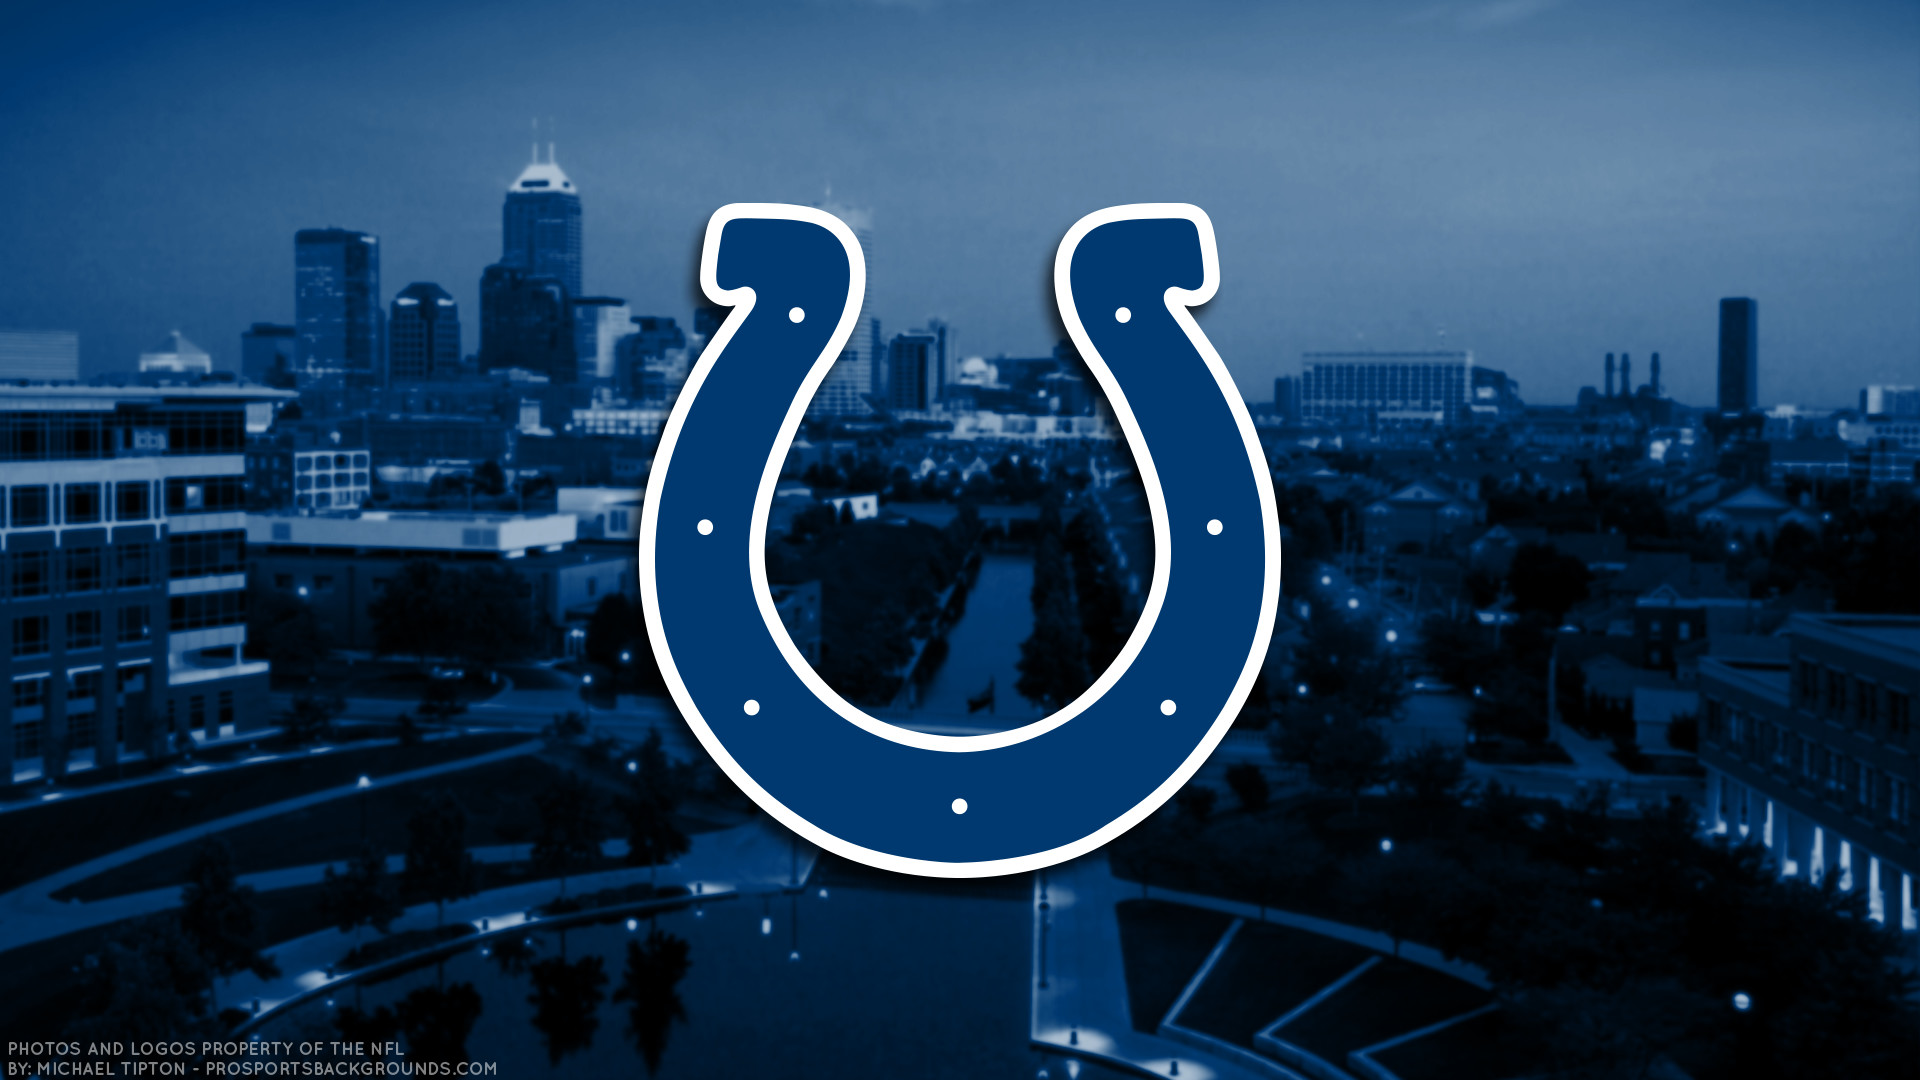 Colts Wallpaper the best 71 images in 2018 1920x1080